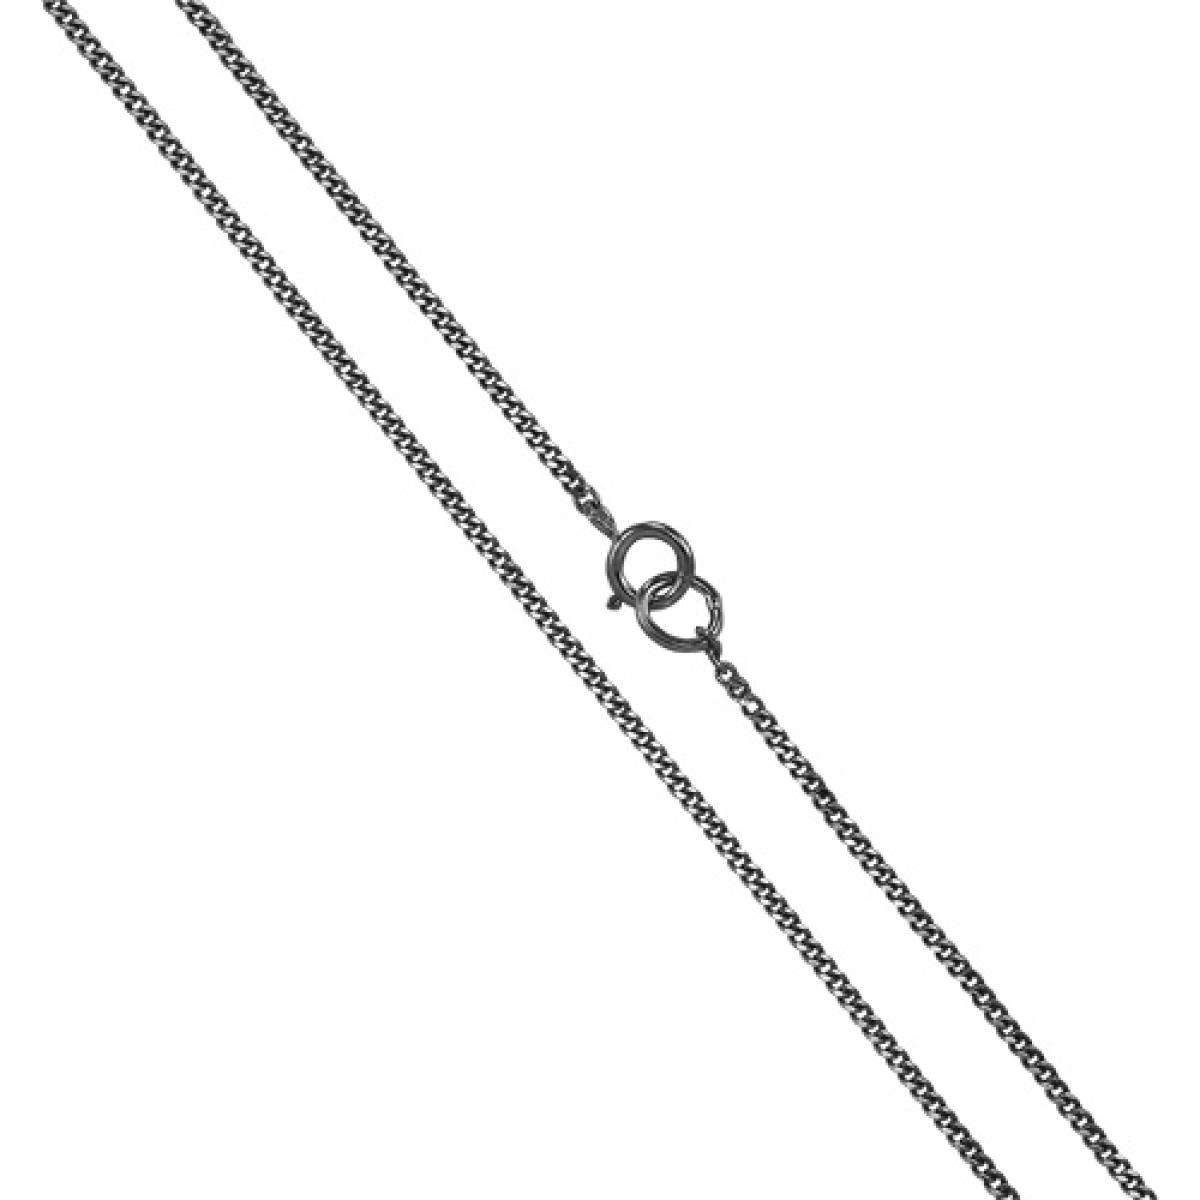 Alterative image for 9ct White Gold Diamond Cut Curb Chain 16 - 20 Inches